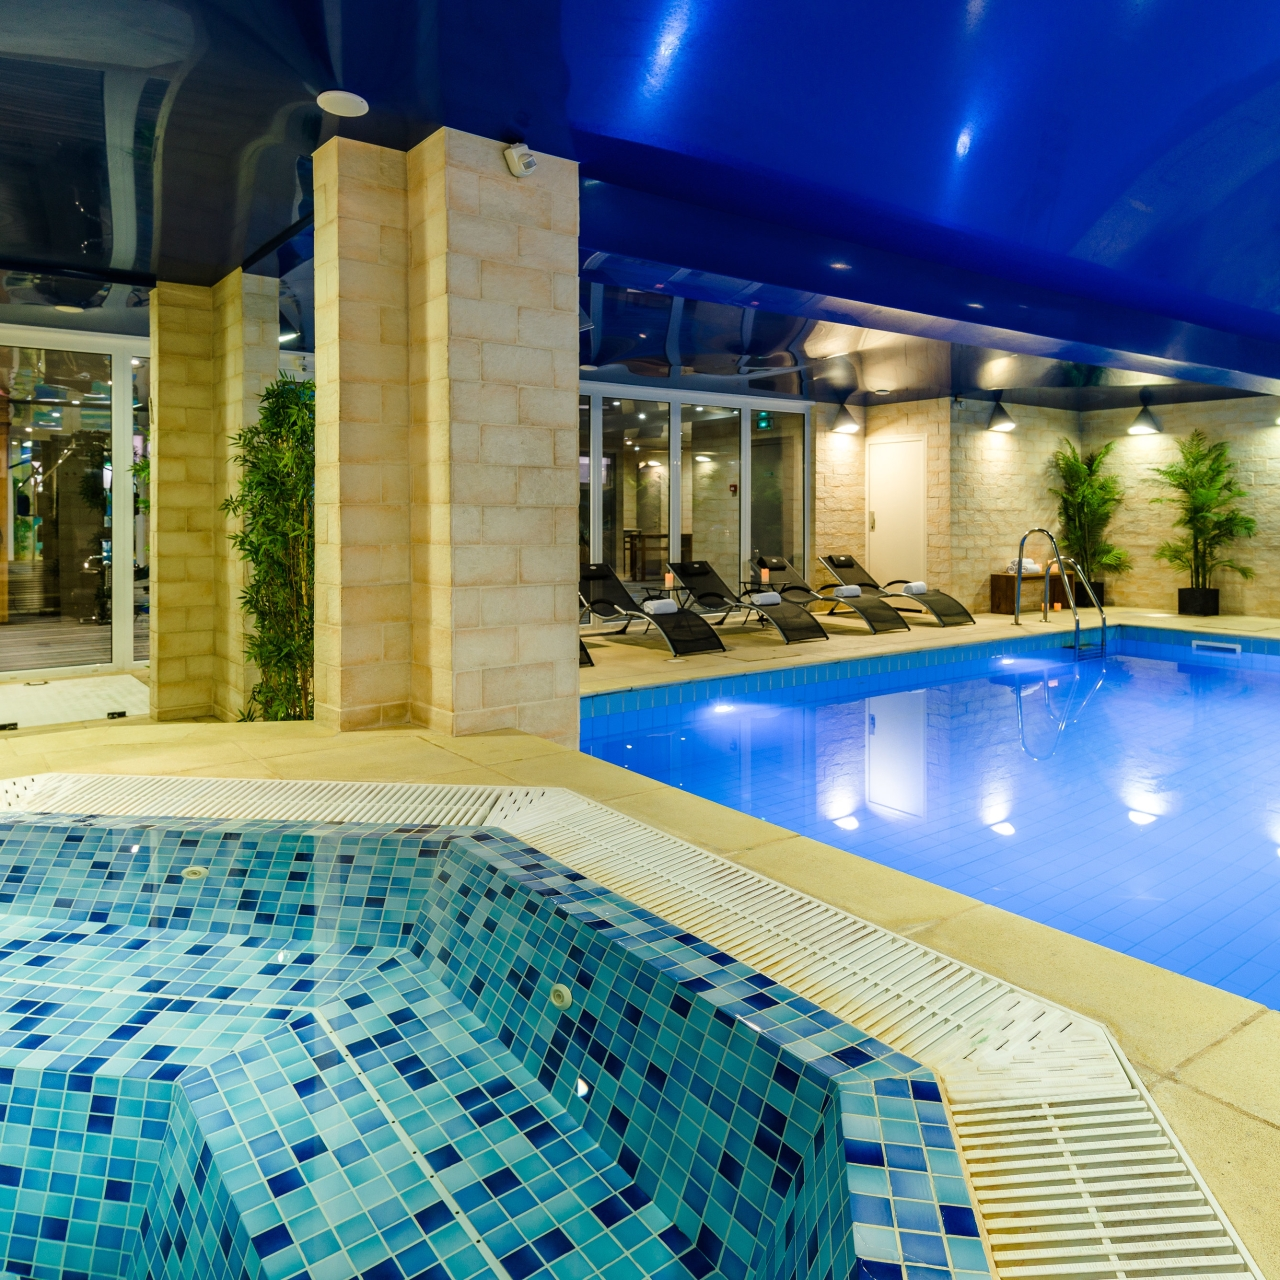 Hotel Residence Europe 3 Hrs Star Hotel In Clichy Ile De France